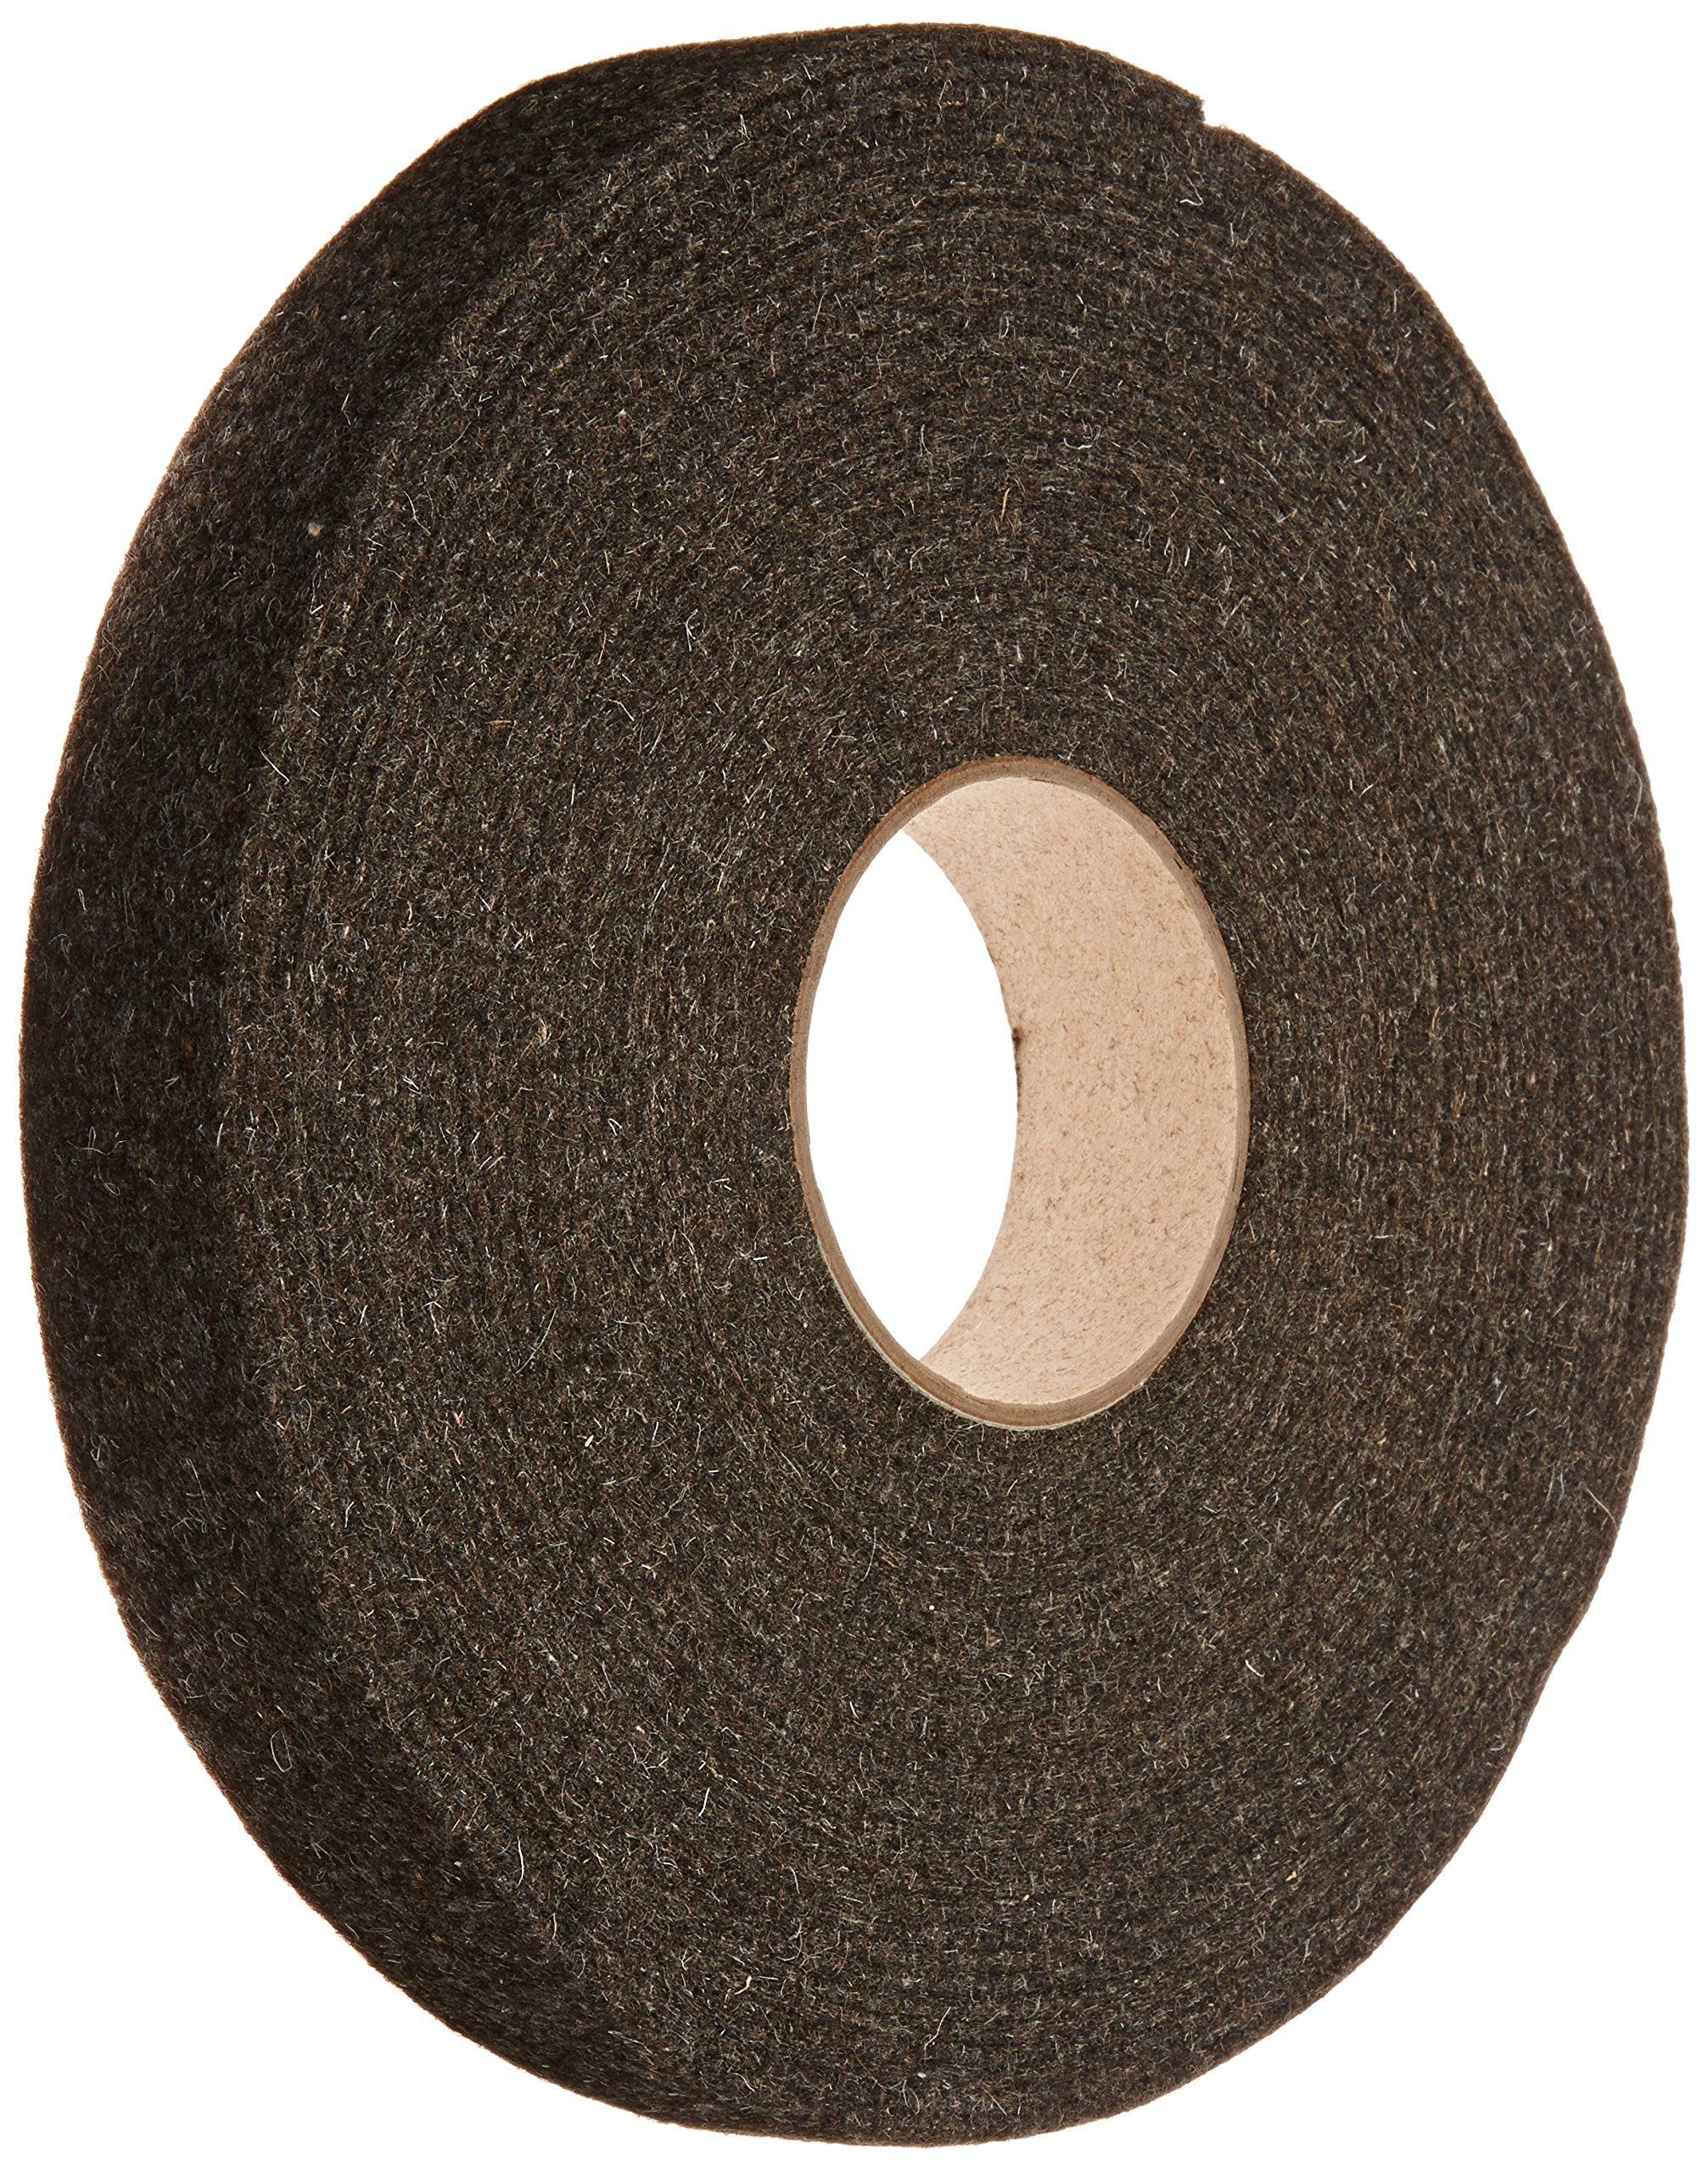 Grade F26 Pressed Wool Felt Strip, Gray, SAE J314, 1/8'' Thickness, 1'' Width, 25' Length (Pack of 1) by Small Parts